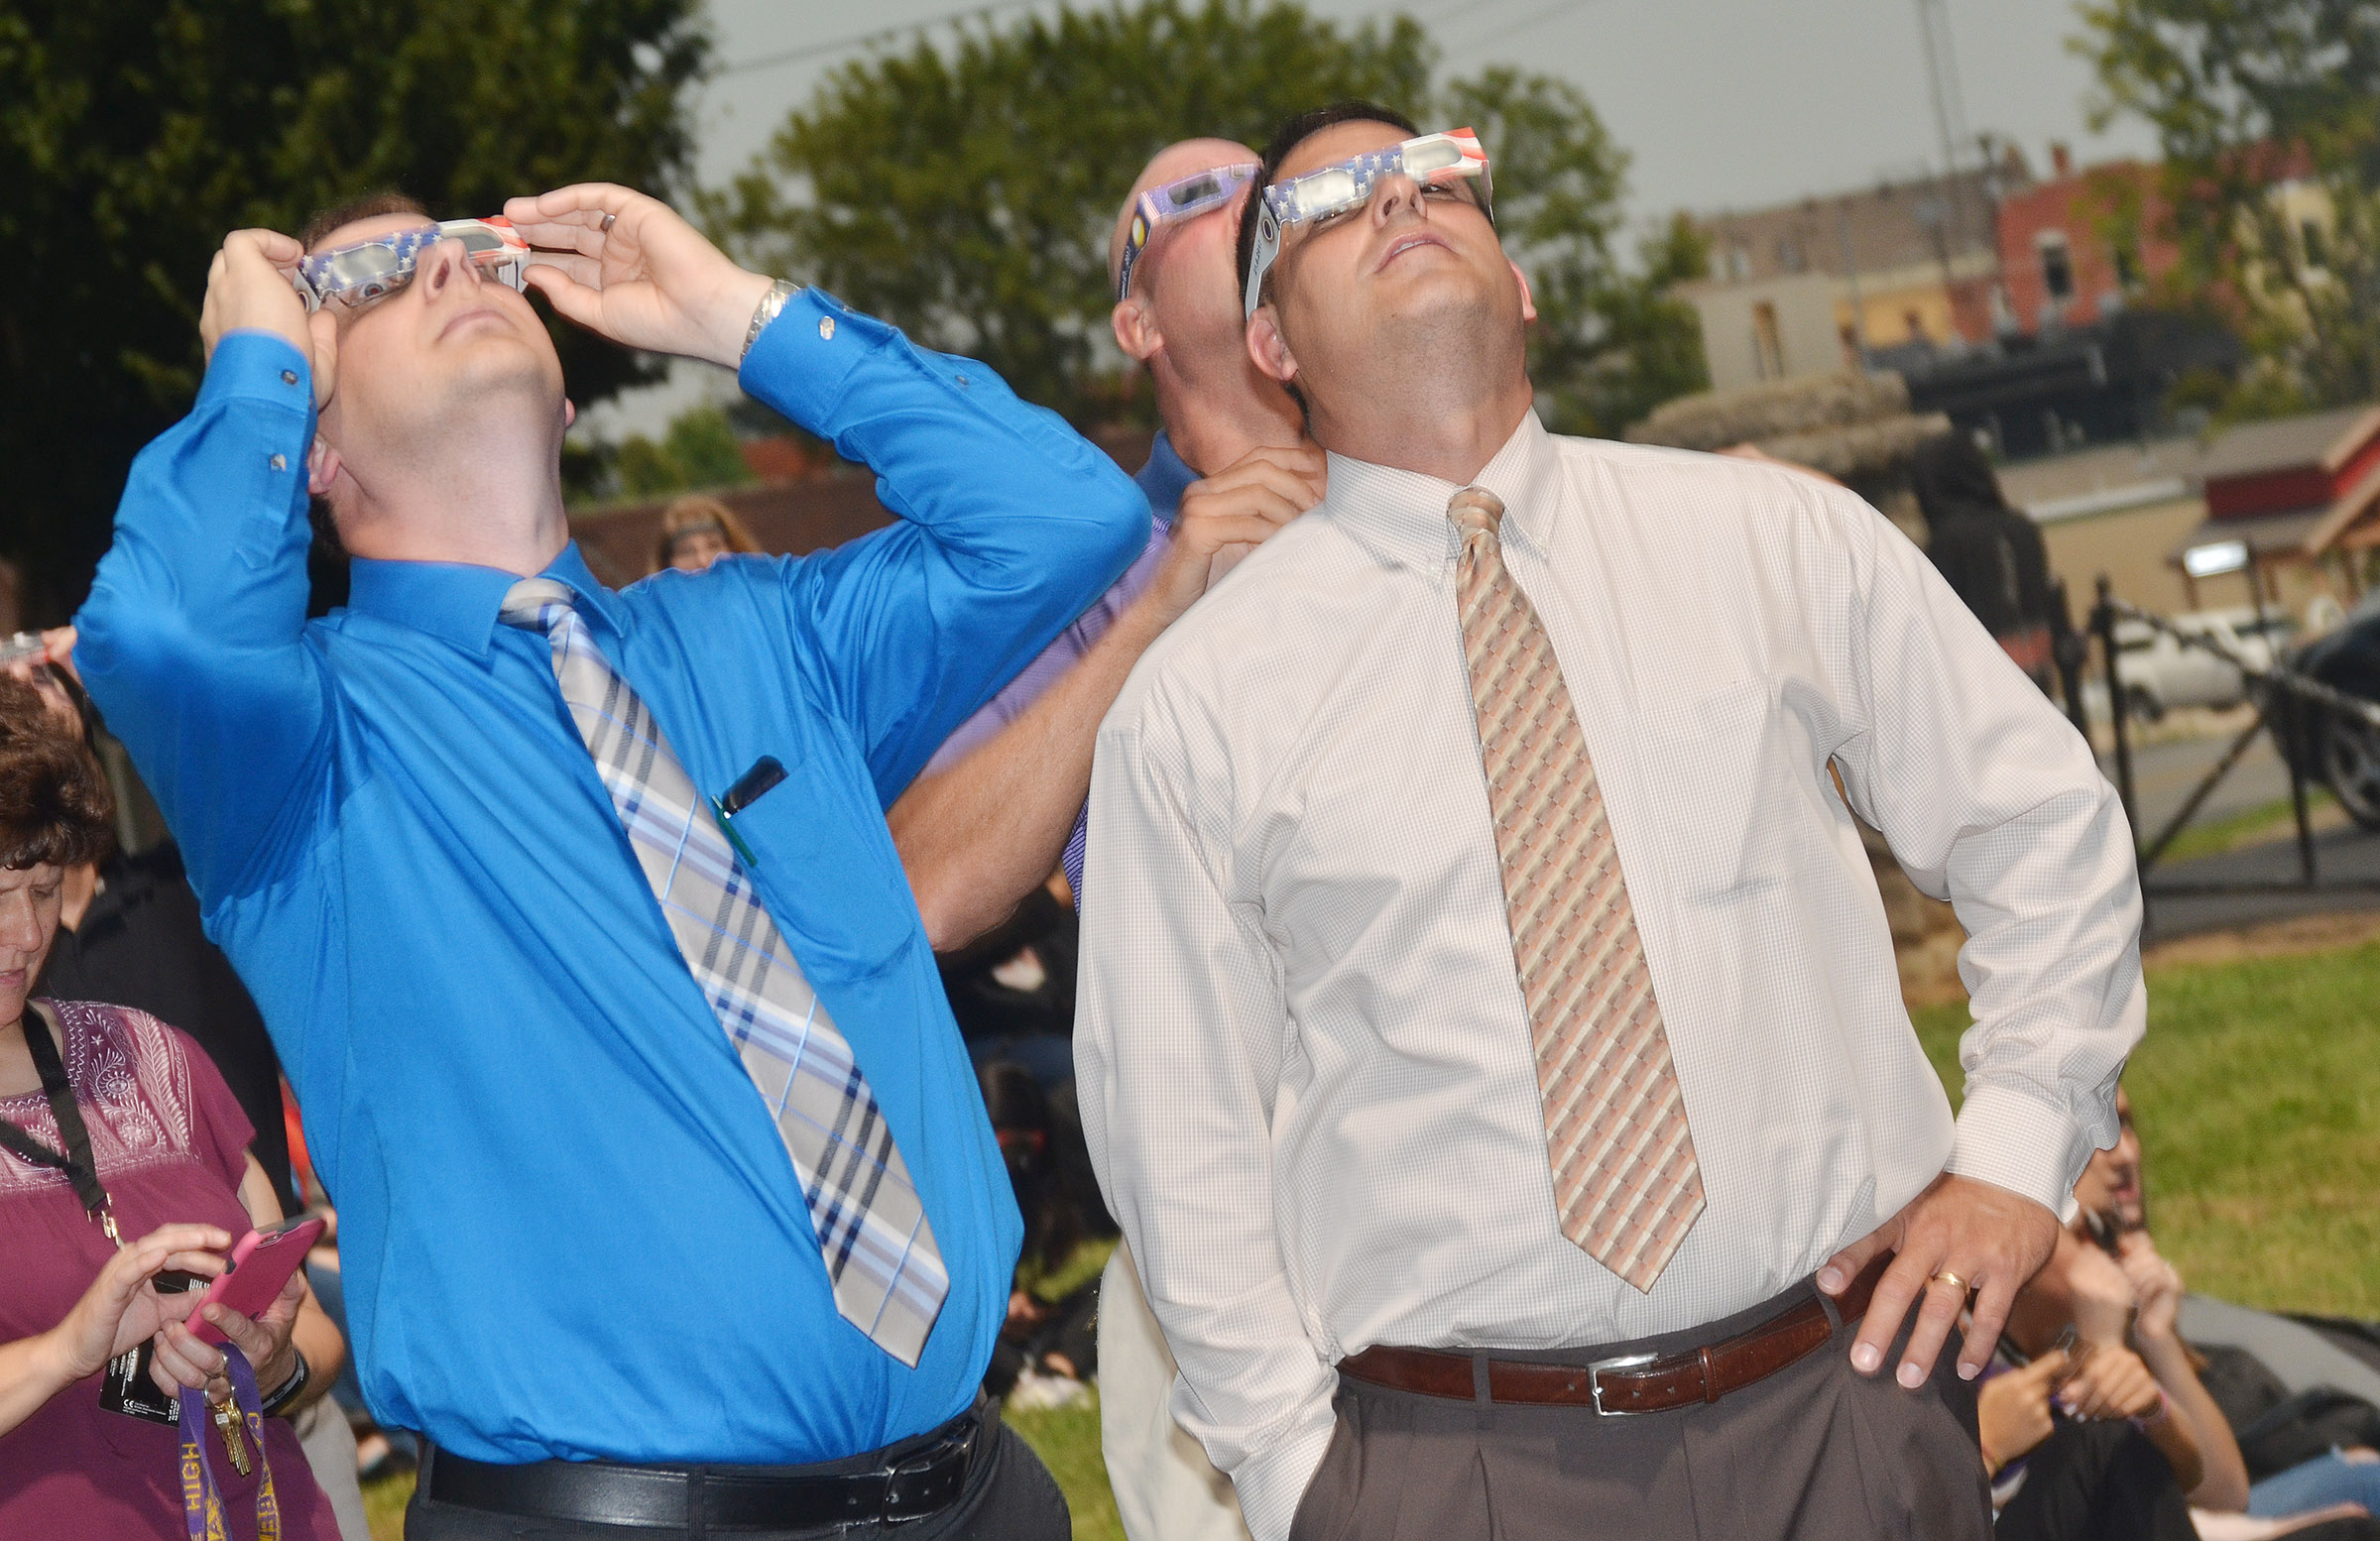 CHS Guidance Counselor Richard Dooley, at left, and Superintendent Kirby Smith view the eclipse.